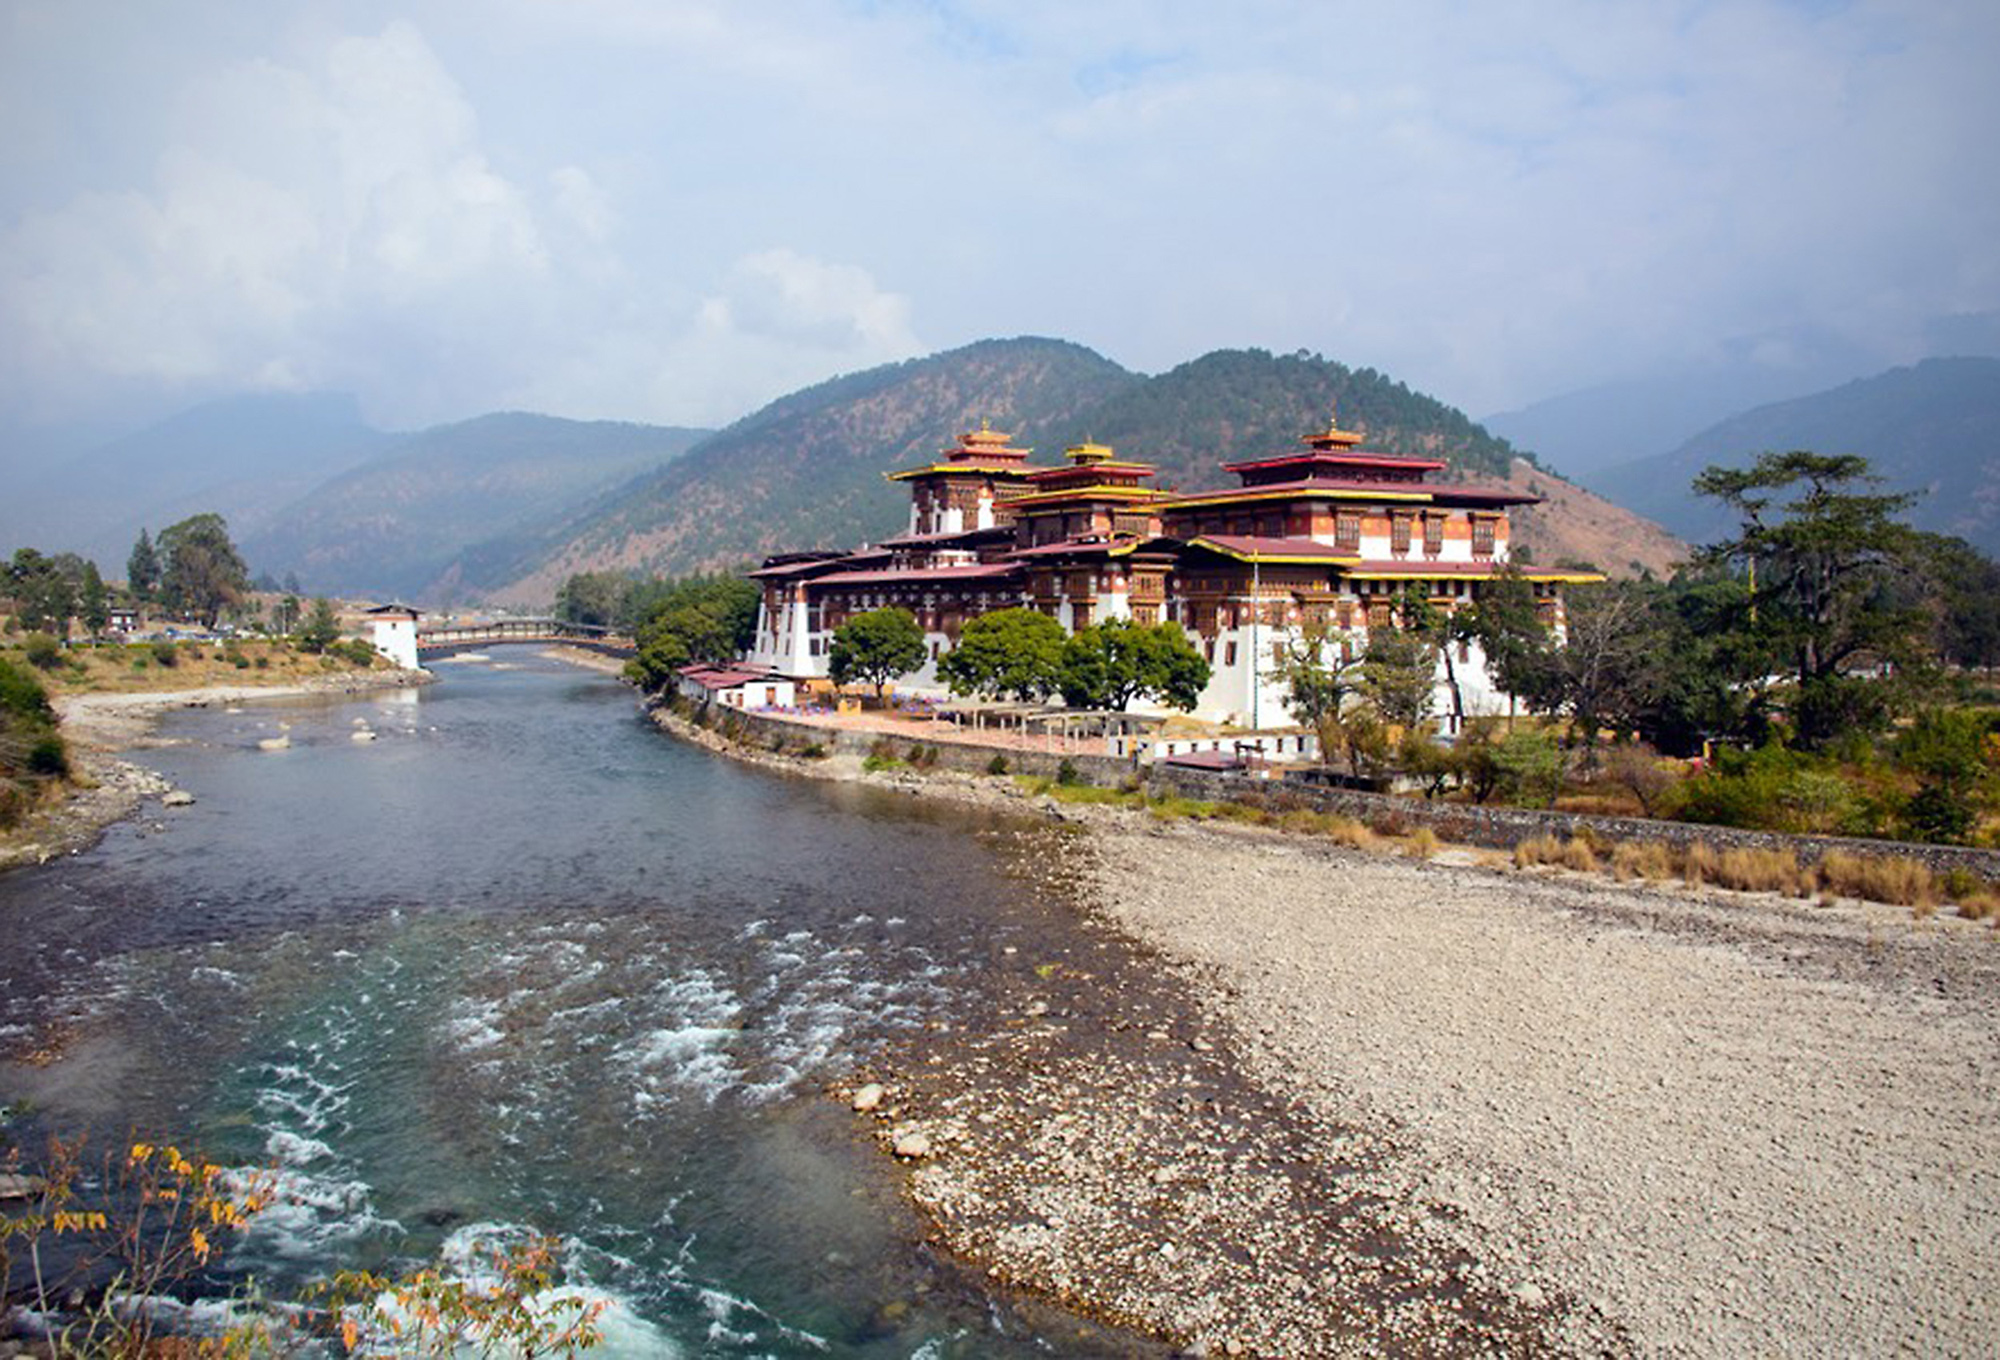 Beautiful ancient fortress palace, Punakha Dzong by a stony river, Bhutan